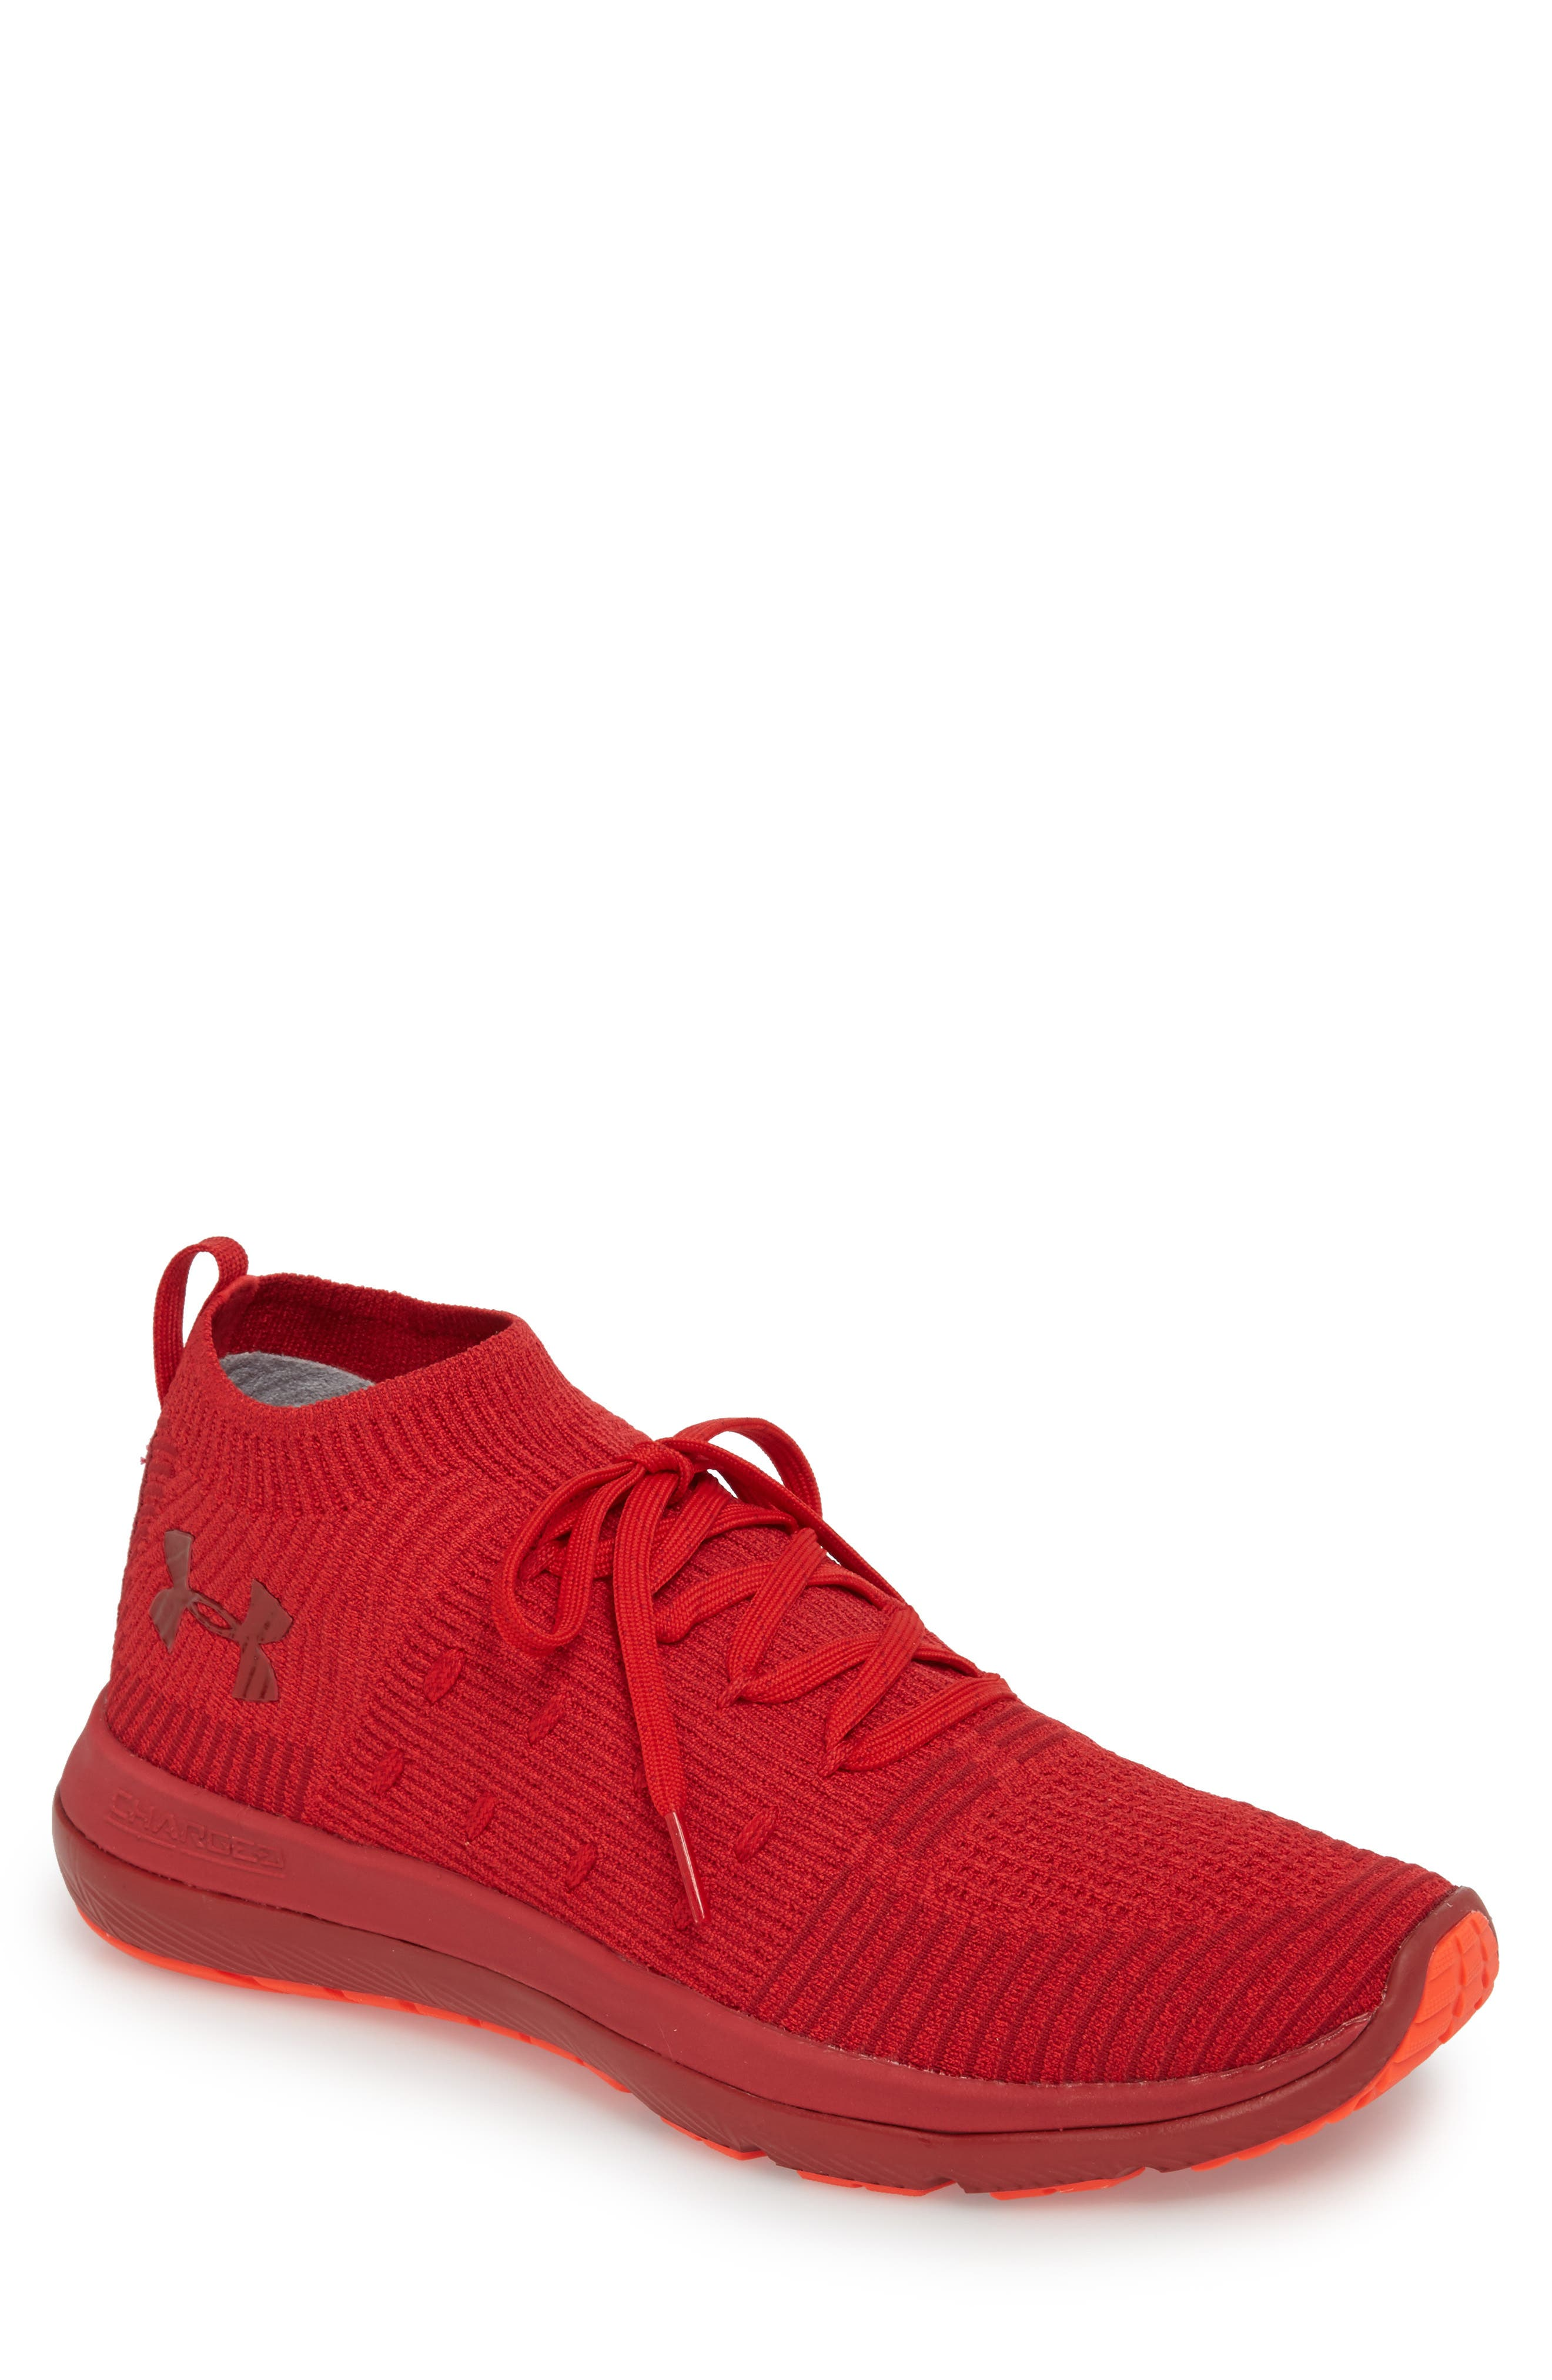 Alternate Image 1 Selected - Under Armour Slingflex Rise Sneaker (Men)